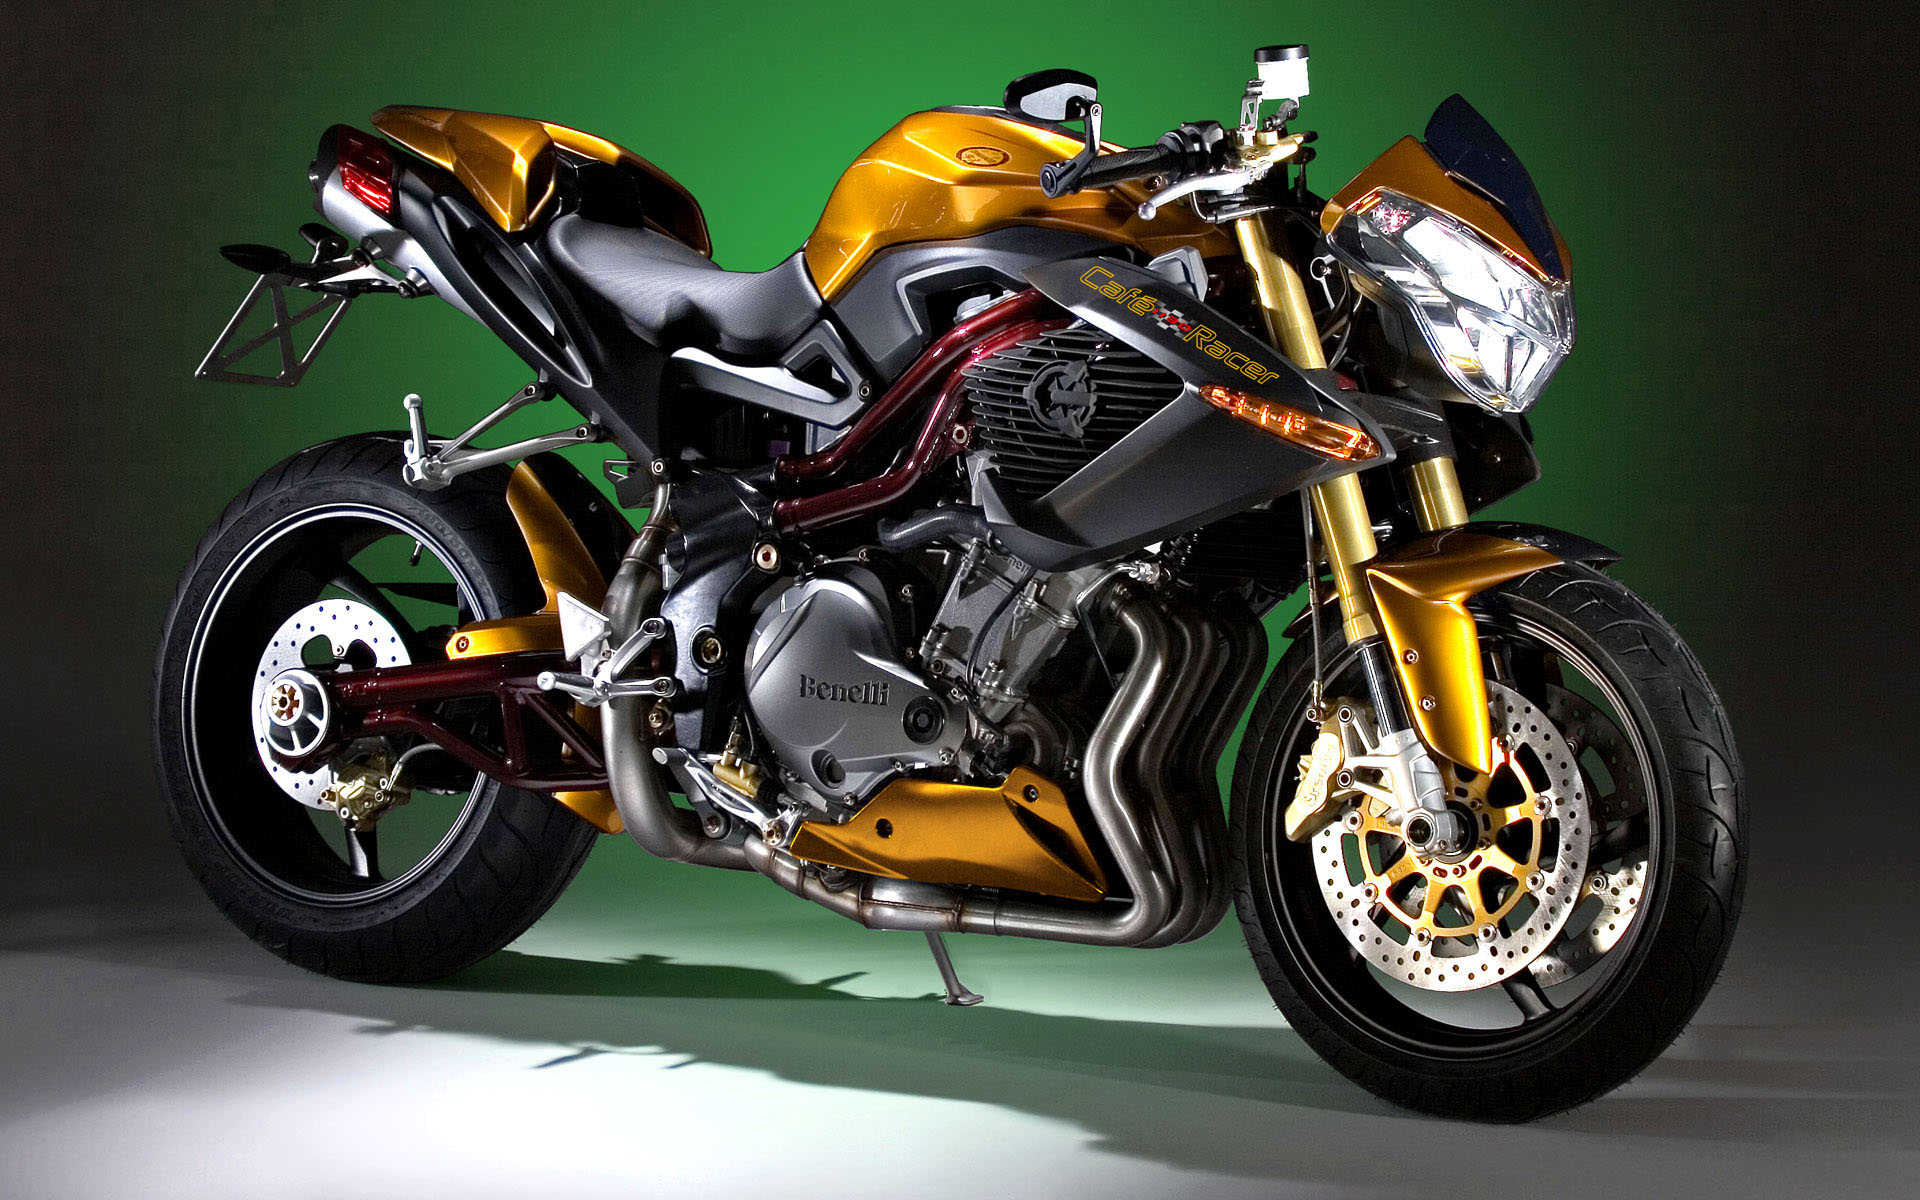 Benelli Cafe Racer 1130 HD Wallpaper